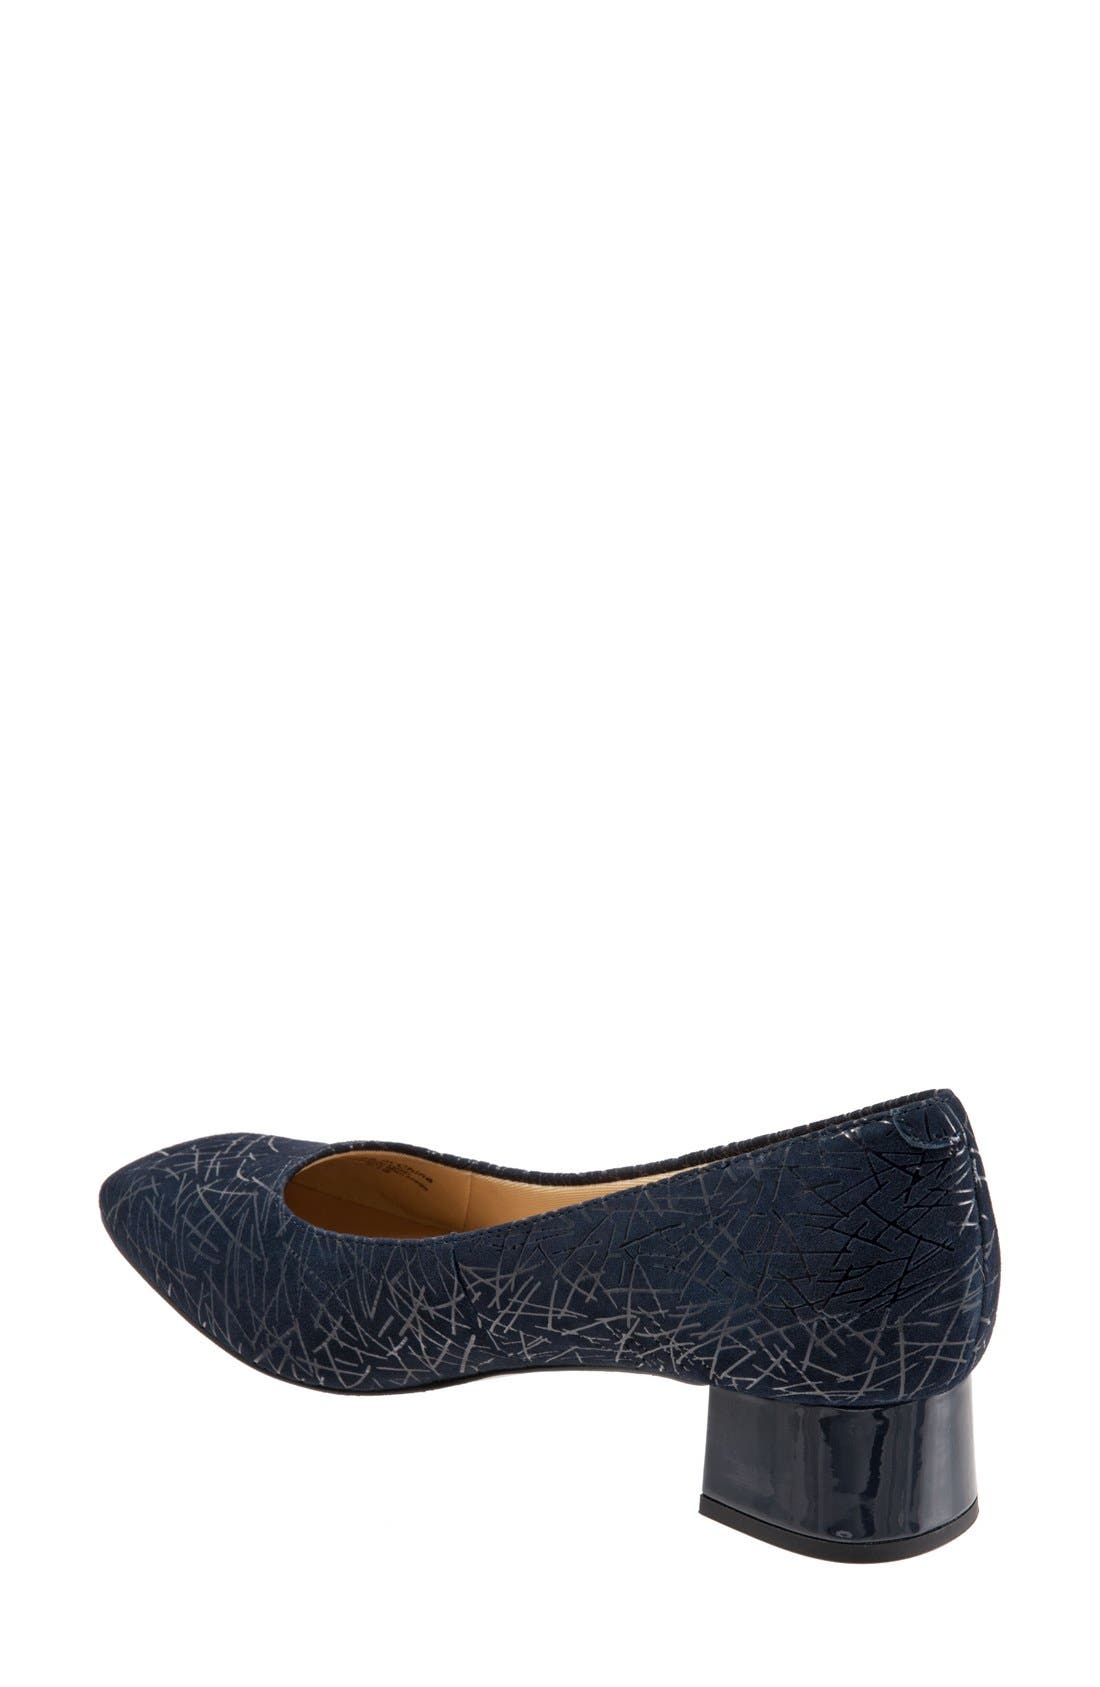 'Lola' Pump,                             Alternate thumbnail 2, color,                             Navy Embossed Leather